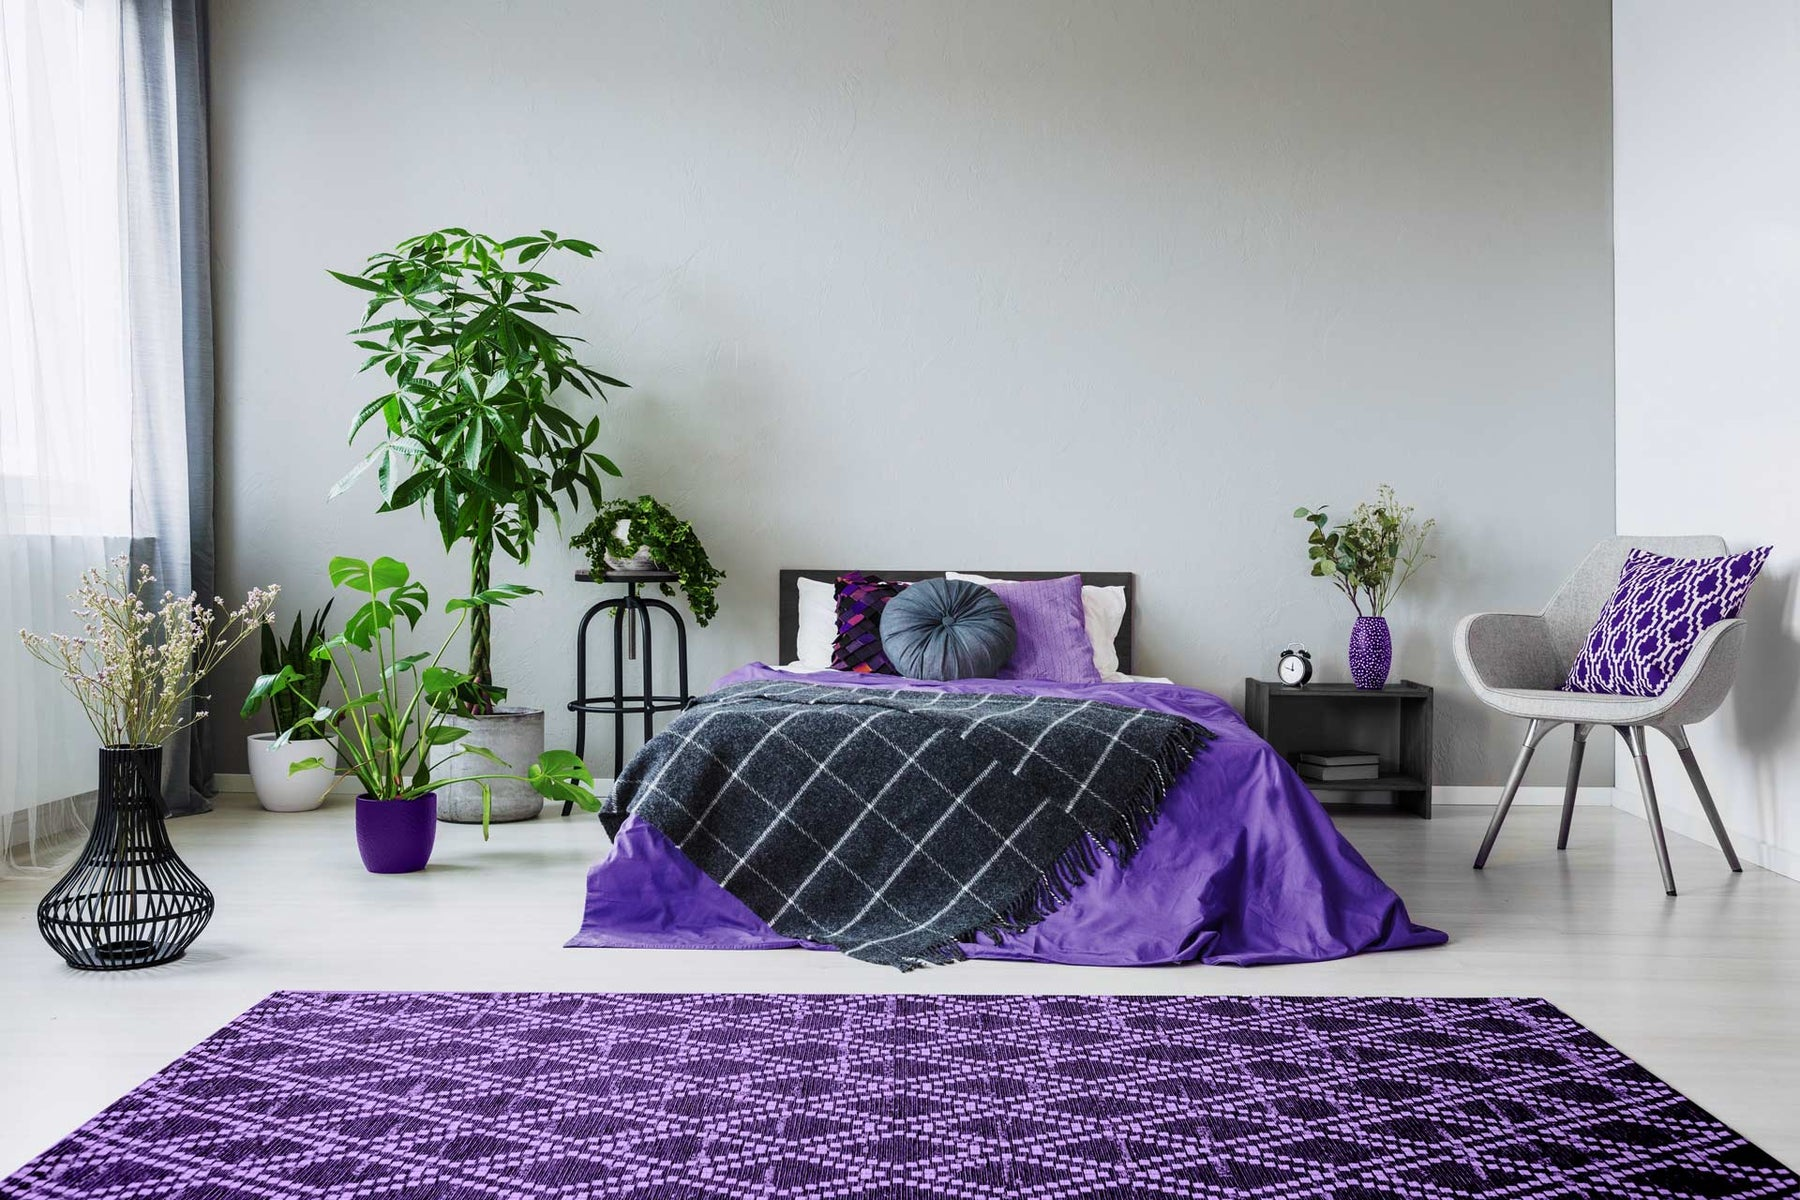 air-purifying plants in bedroom with purple rug and sheets